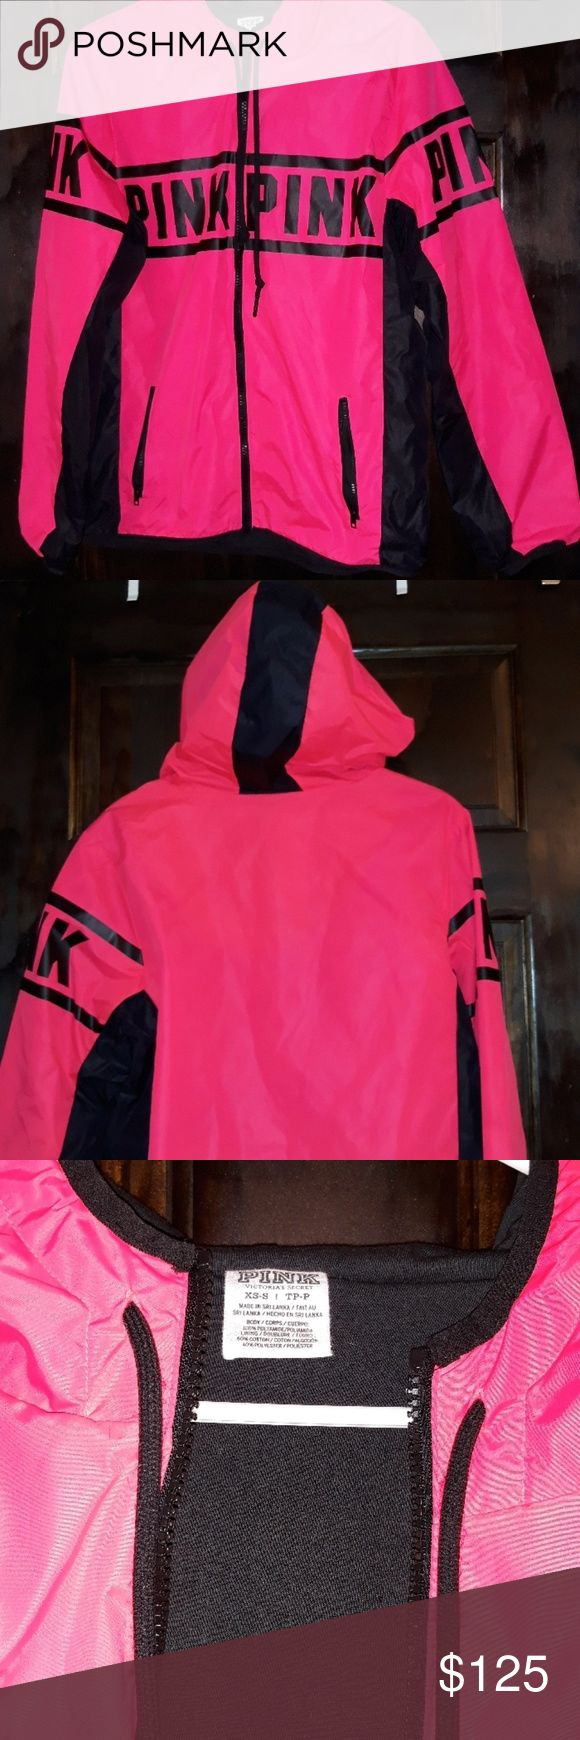 VS PINK ANORAK HARD TO FIND THIS COLOR !!! FLEECE LINED FULL ZIP HOODED NEON PINK AND BLACK SUPER WARM WINDBREAKER 2 FRONT POCKETS NEW WITHOUT TAGS! PERFECT XMAS GIFT! SHE WILL LOVE LOVE LOVE THIS  NO TRADES NOOO TRADES PINK Jackets & Coats